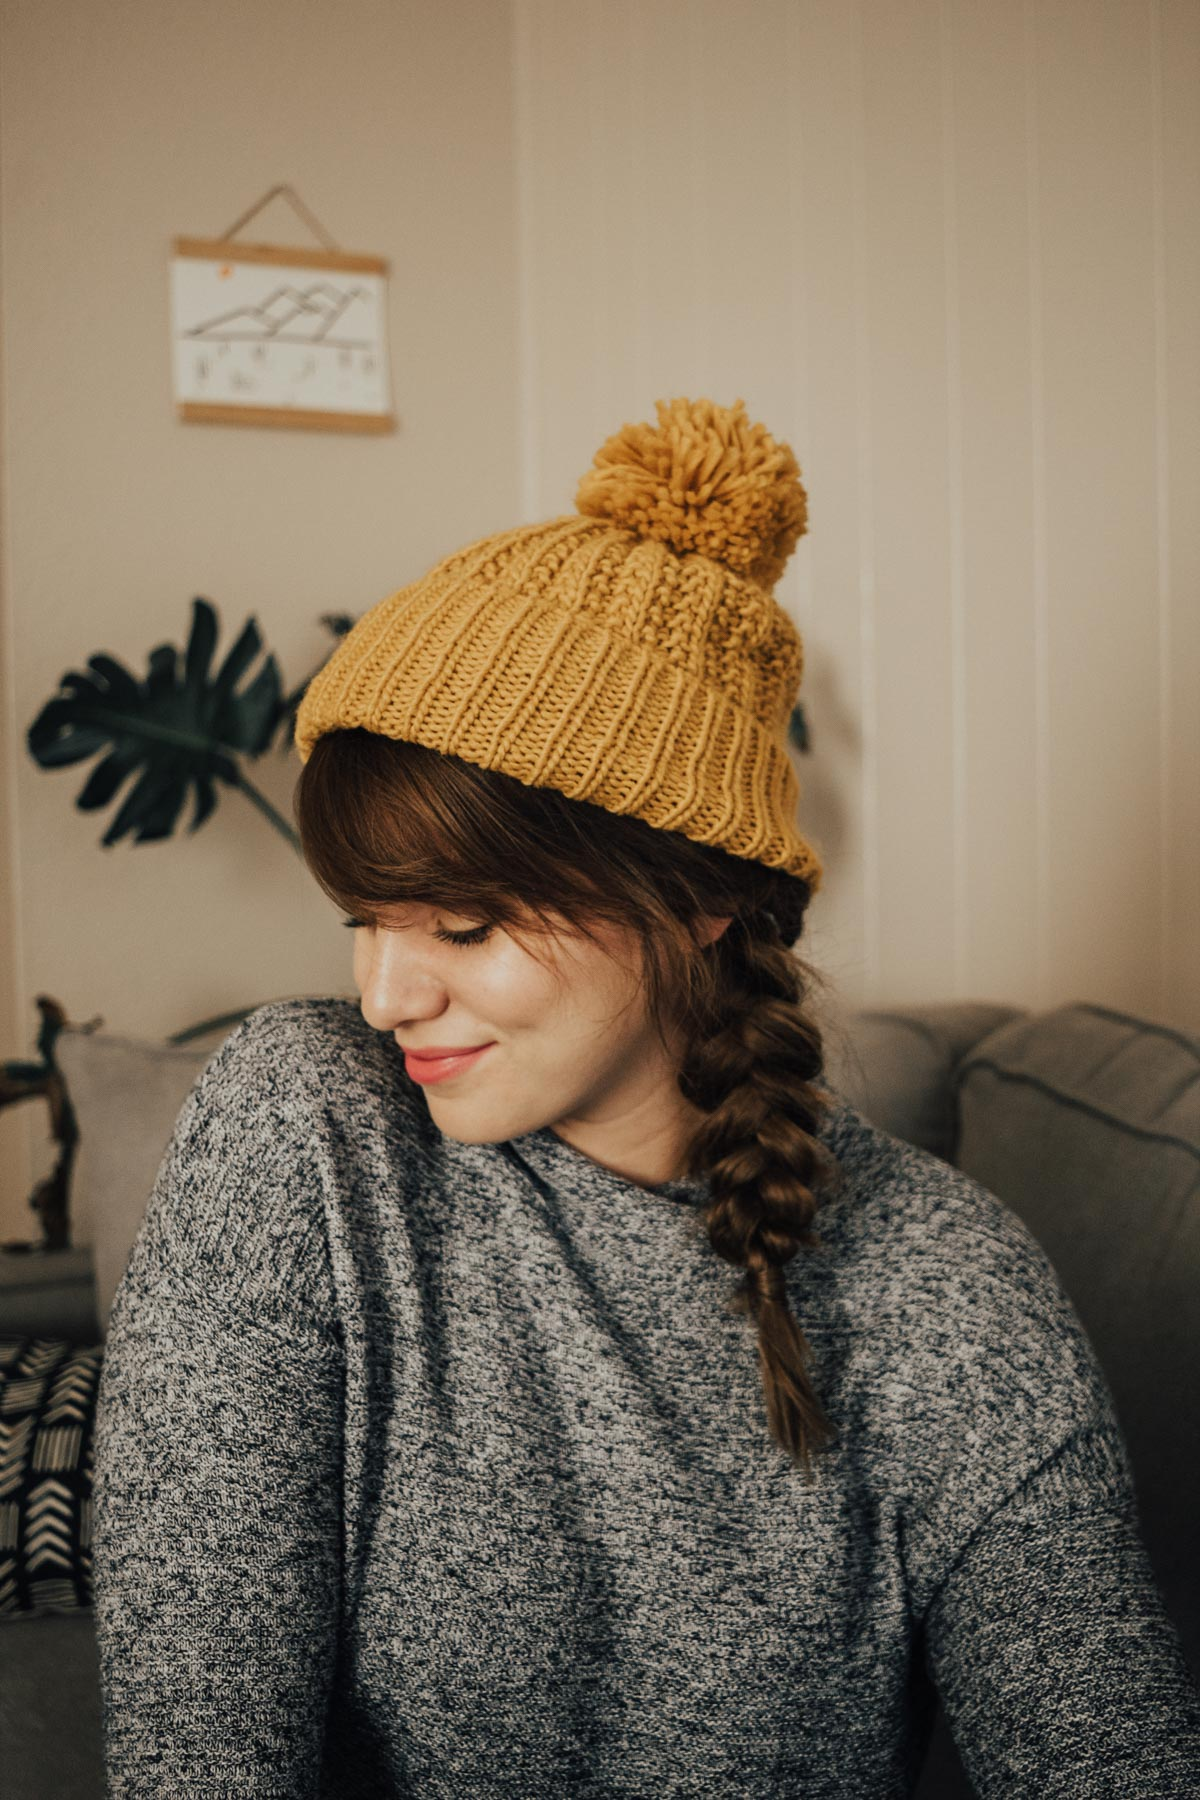 3 Hairstyles to Wear with a Winter Hat